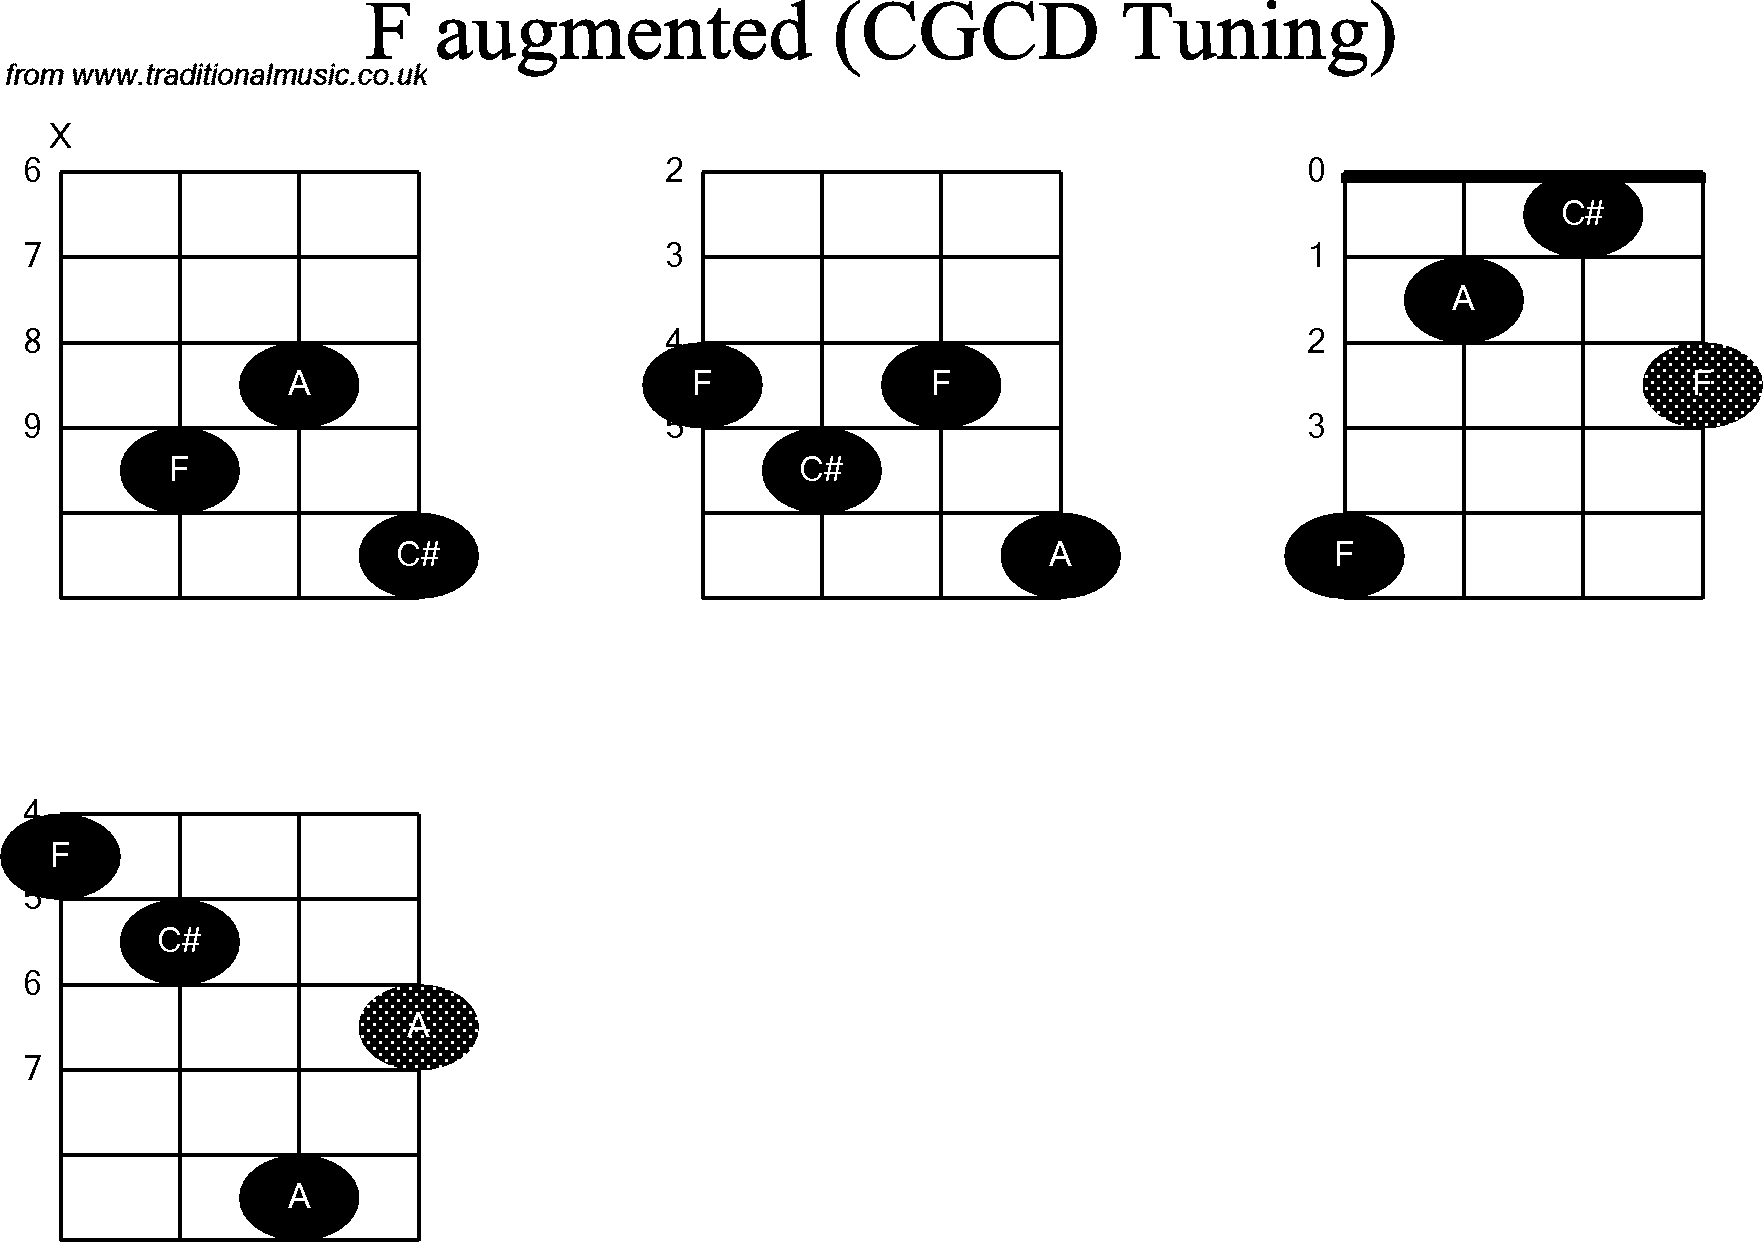 Chord diagrams for: Banjo(Double C) F Augmented